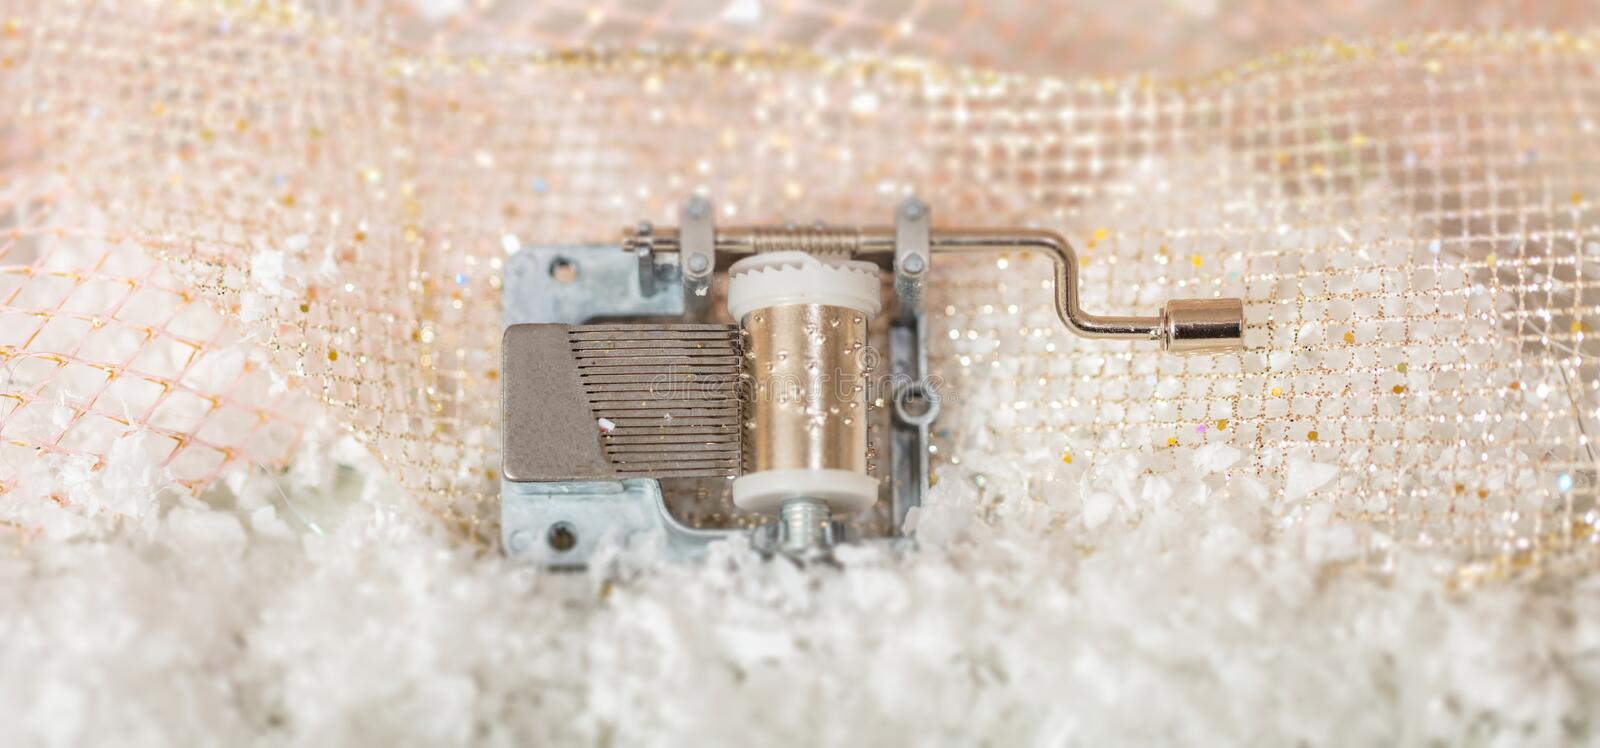 Christmas music box mechanism on snow, against abstract bokeh lights and glitter background. Banner royalty free stock image